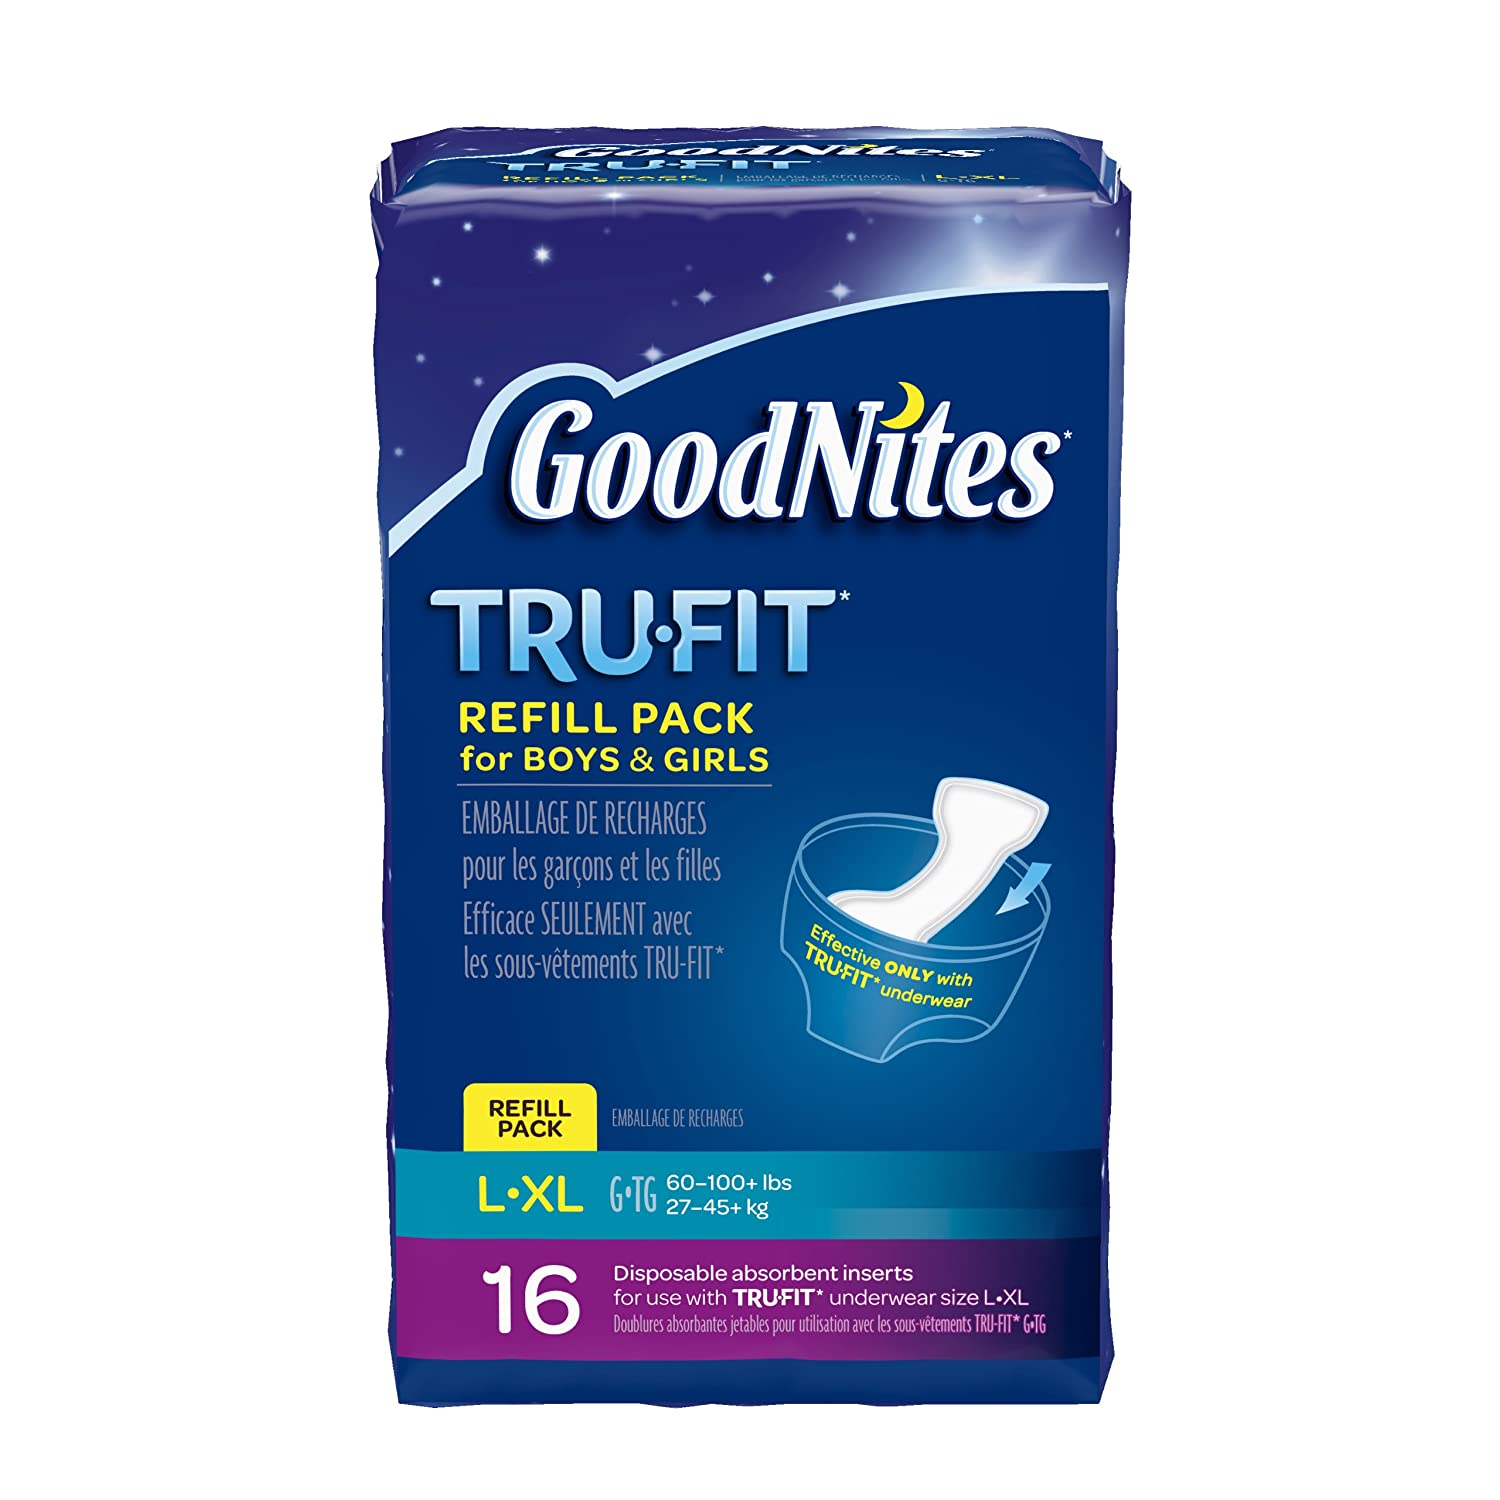 GoodNites TRU-FIT Disposable Absorbent Inserts for Boys & Girls, Refill Pack, Size Large/Extra Large, 16 ct (Pack of 3) 10036000371373